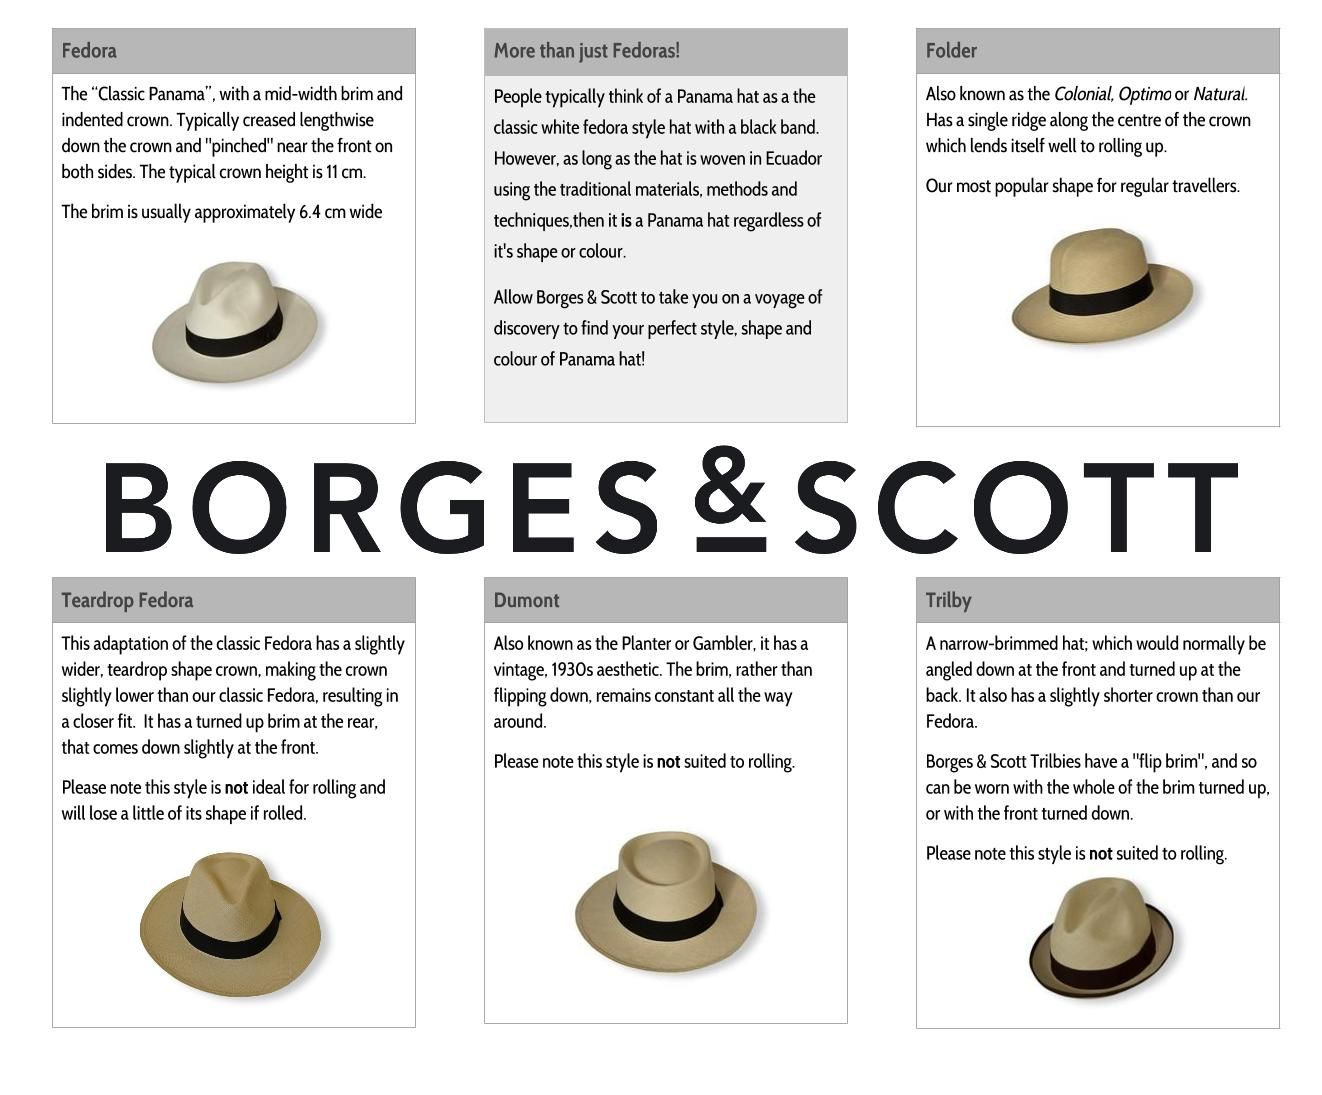 d6216b47 More than just Fedoras: the different Styles of Men's Panama Hats from  Borges & Scott | People typically think of a Panama hat as a the classic  white fedora ...